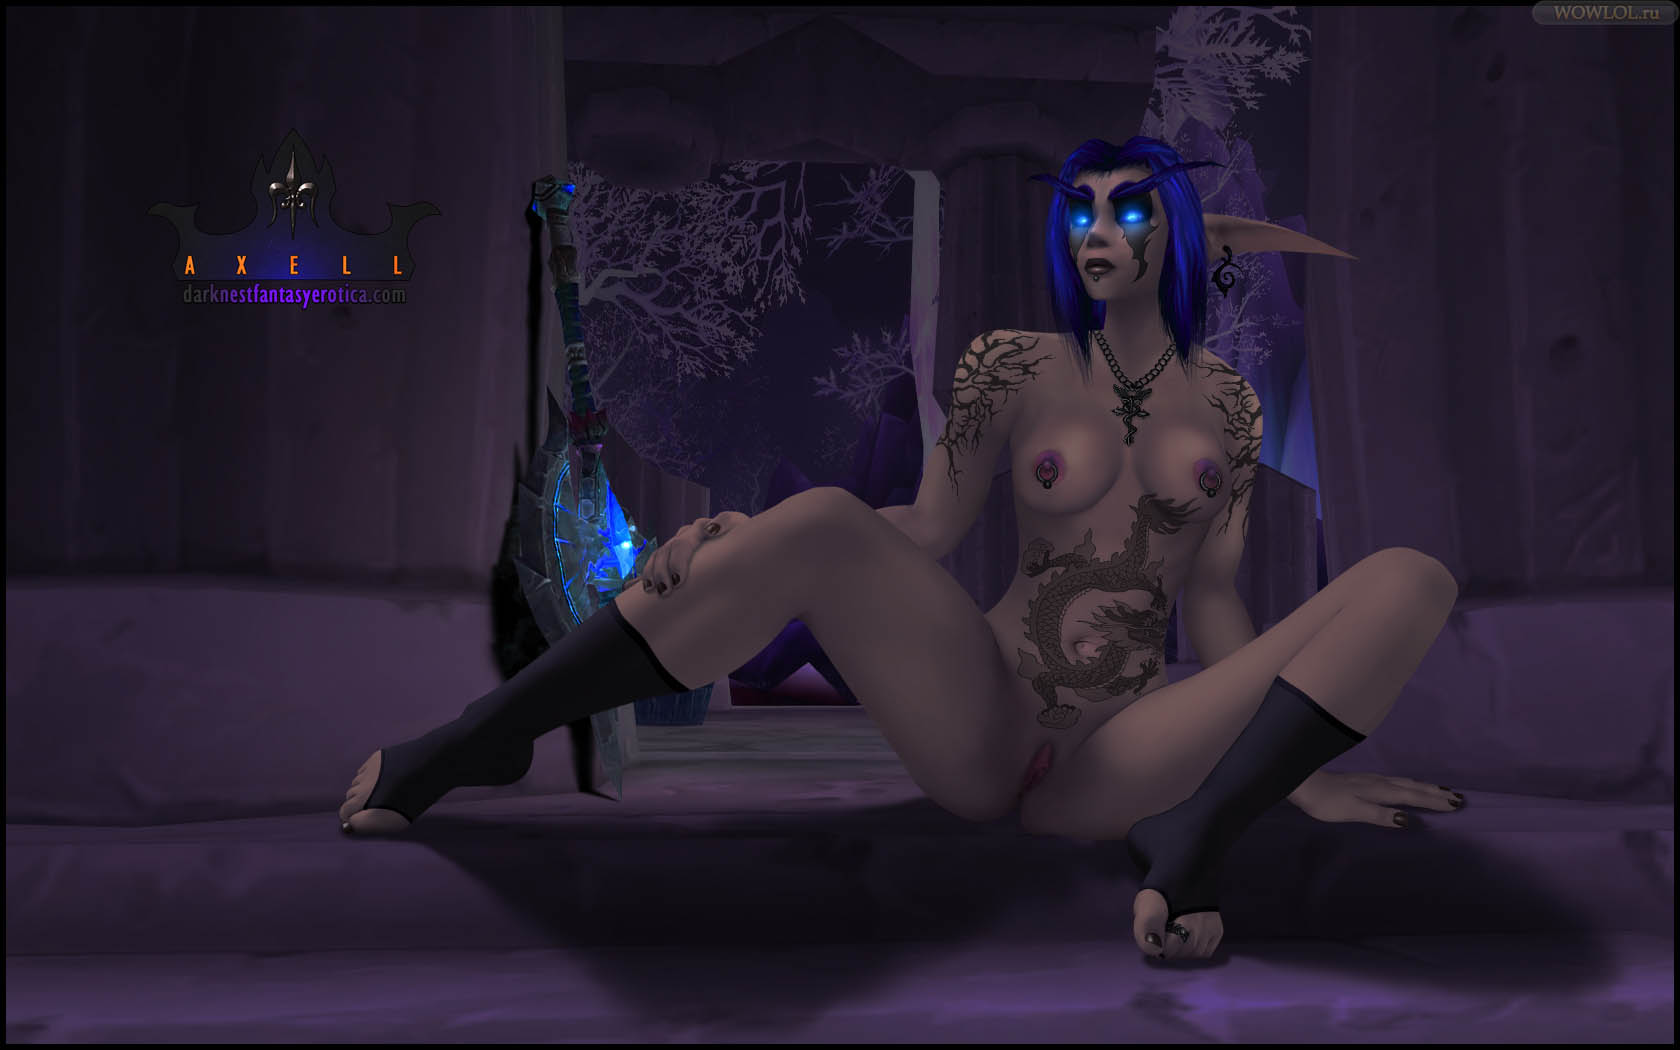 Warcraft nude skins having sex adult pics